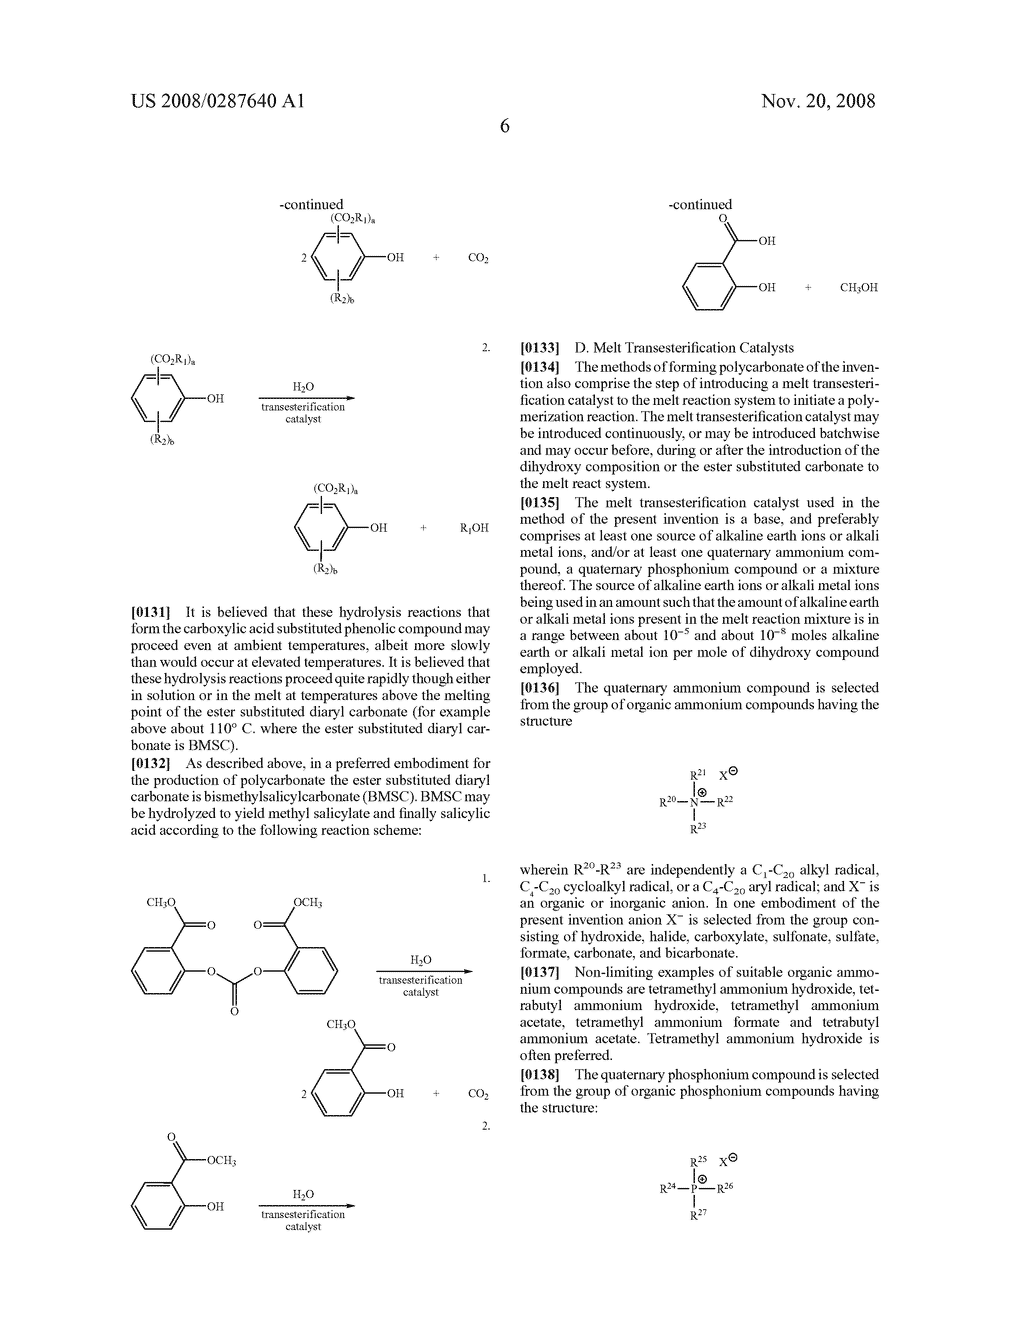 PROCESS FOR THE PRODUCTION OF POLYCARBONATE USING AN ESTER SUBSTITUTED DIARYL CARBONATE - diagram, schematic, and image 14